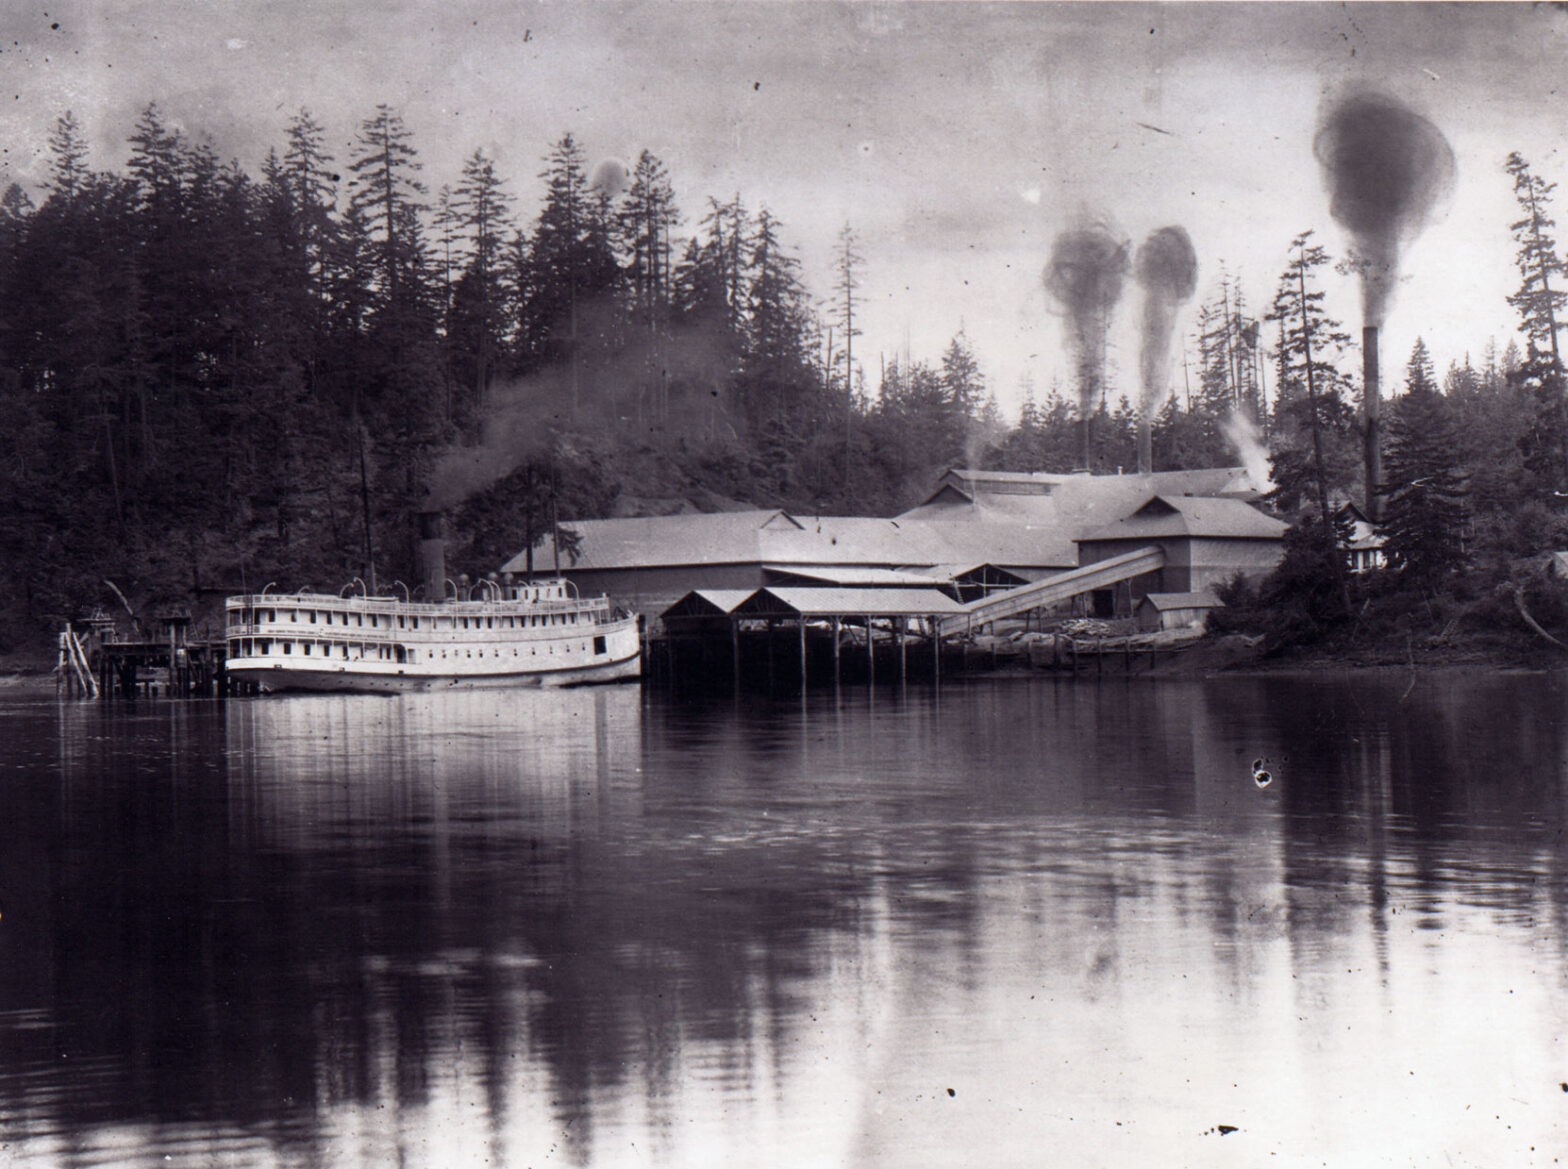 The CPR steamer Charmer at the Vancouver Portland Cement Company wharf, Tod Inlet, circa 1908 (BC Archives photo A-00024)